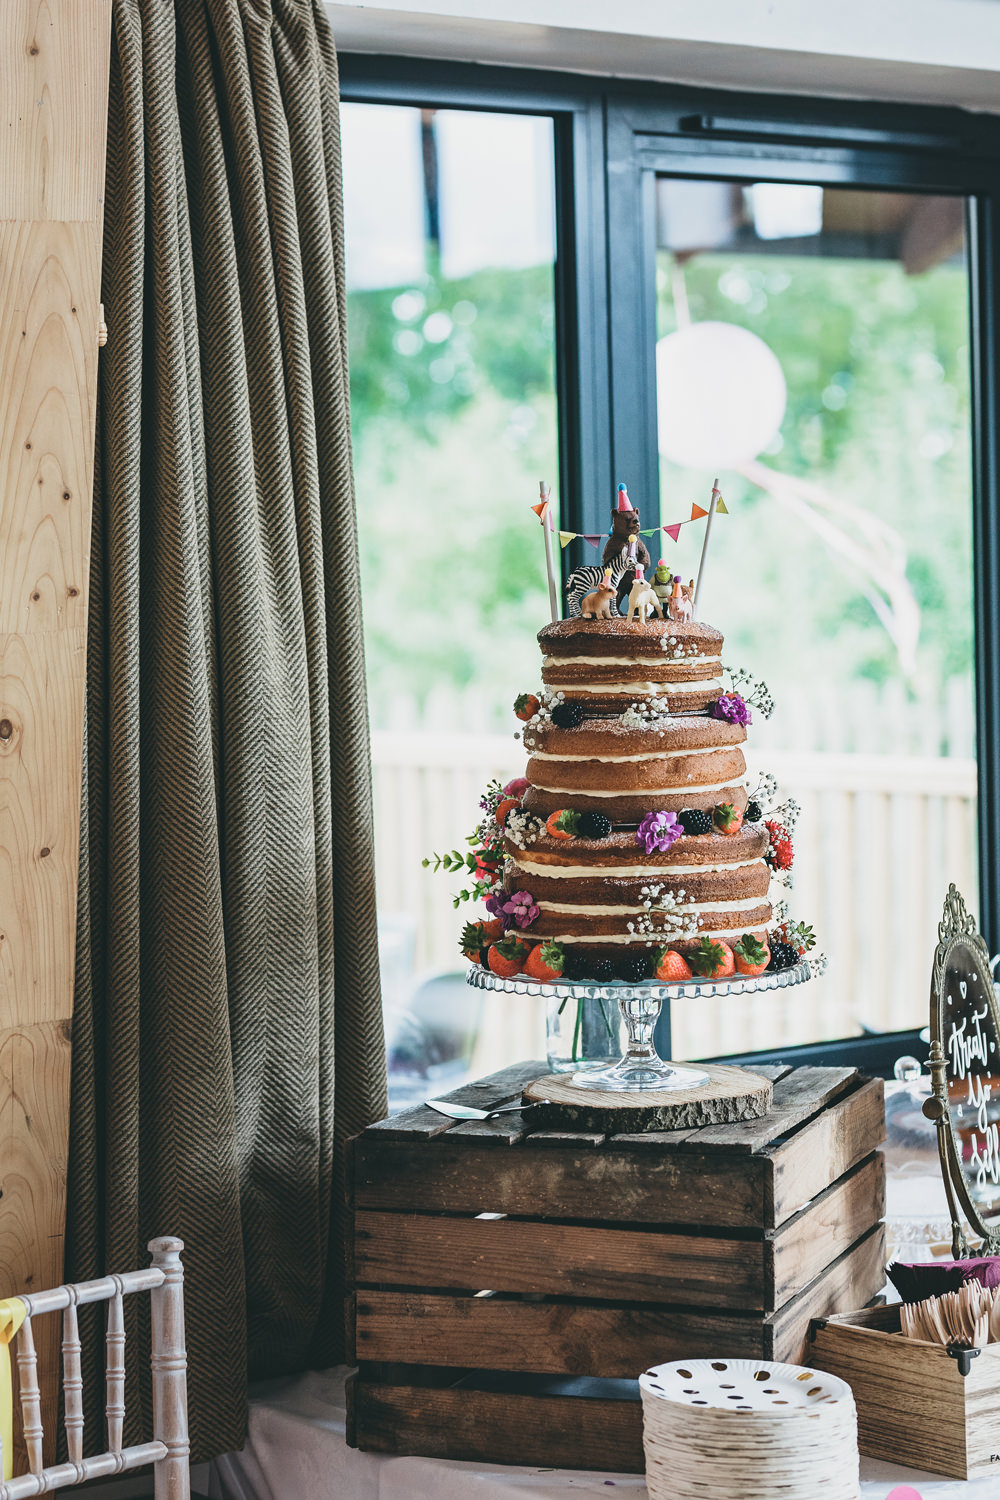 Naked Cake Layer Sponge Flowers Berries Crate Stand Rock Village Hall Wedding Lucie Hamilton Photography